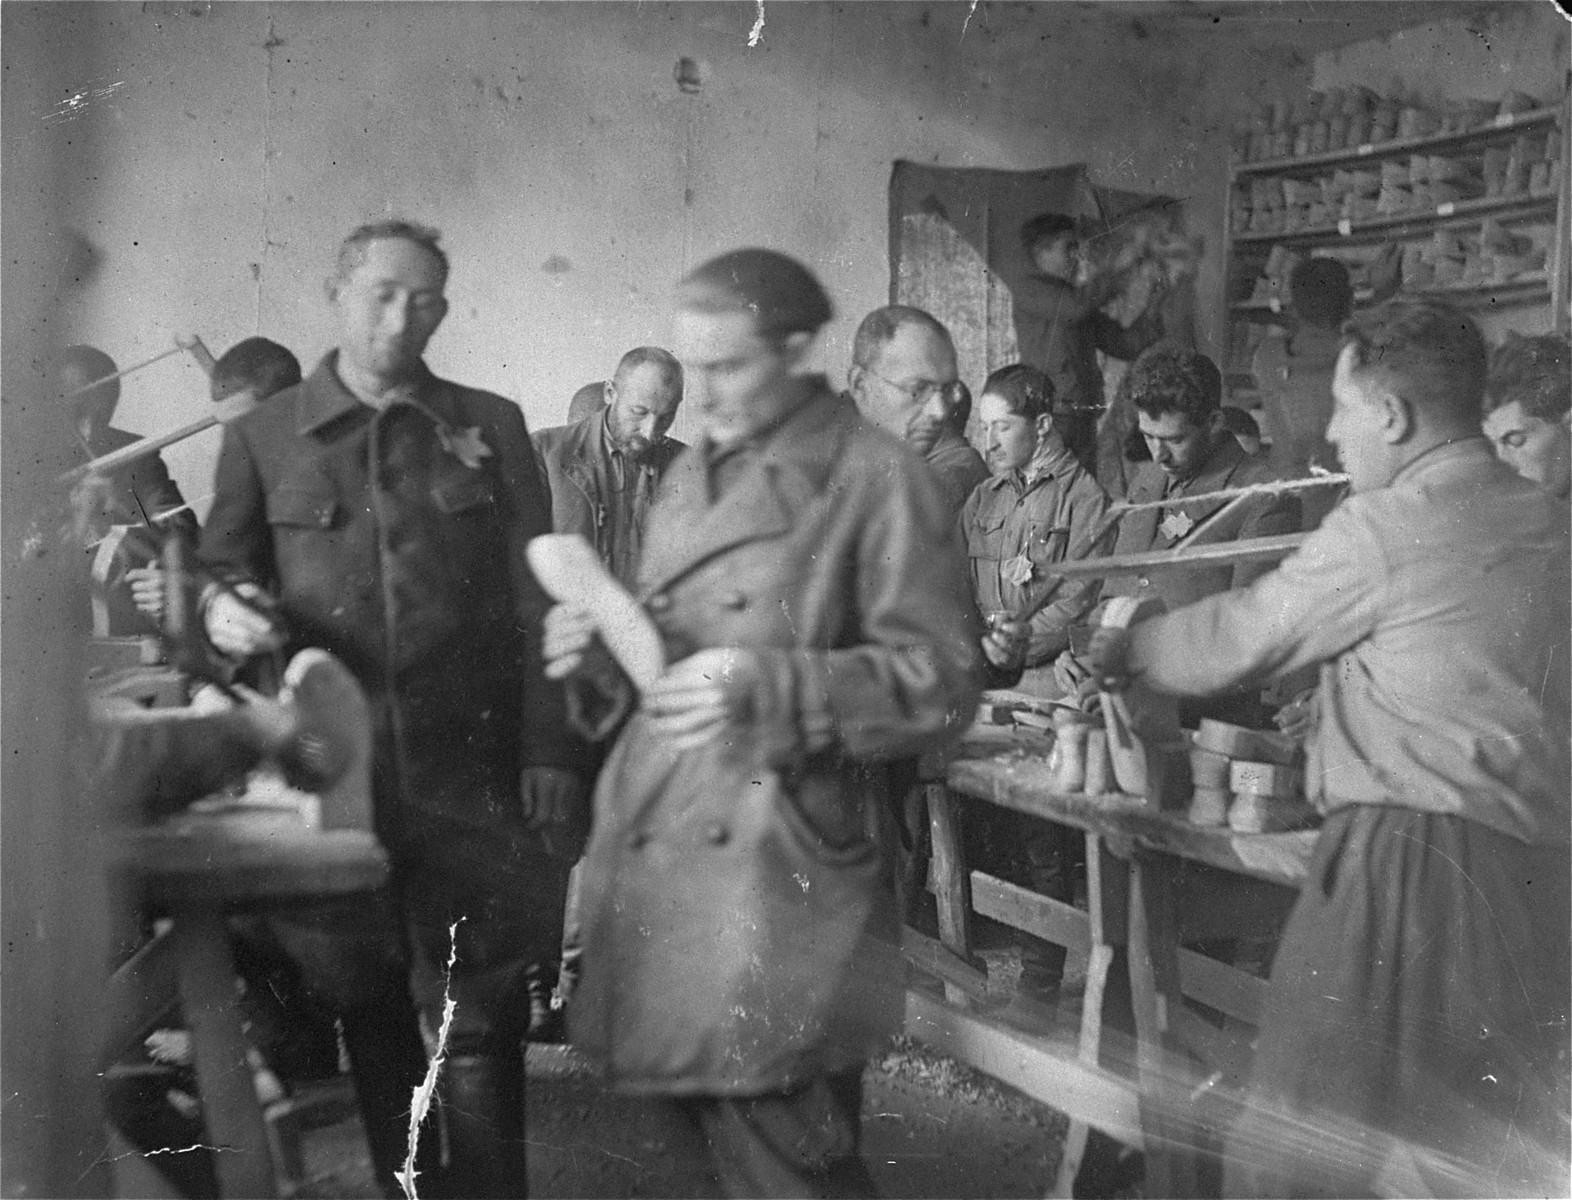 Jews at work in a shoe factory in the Szarkowszczyzna ghetto.